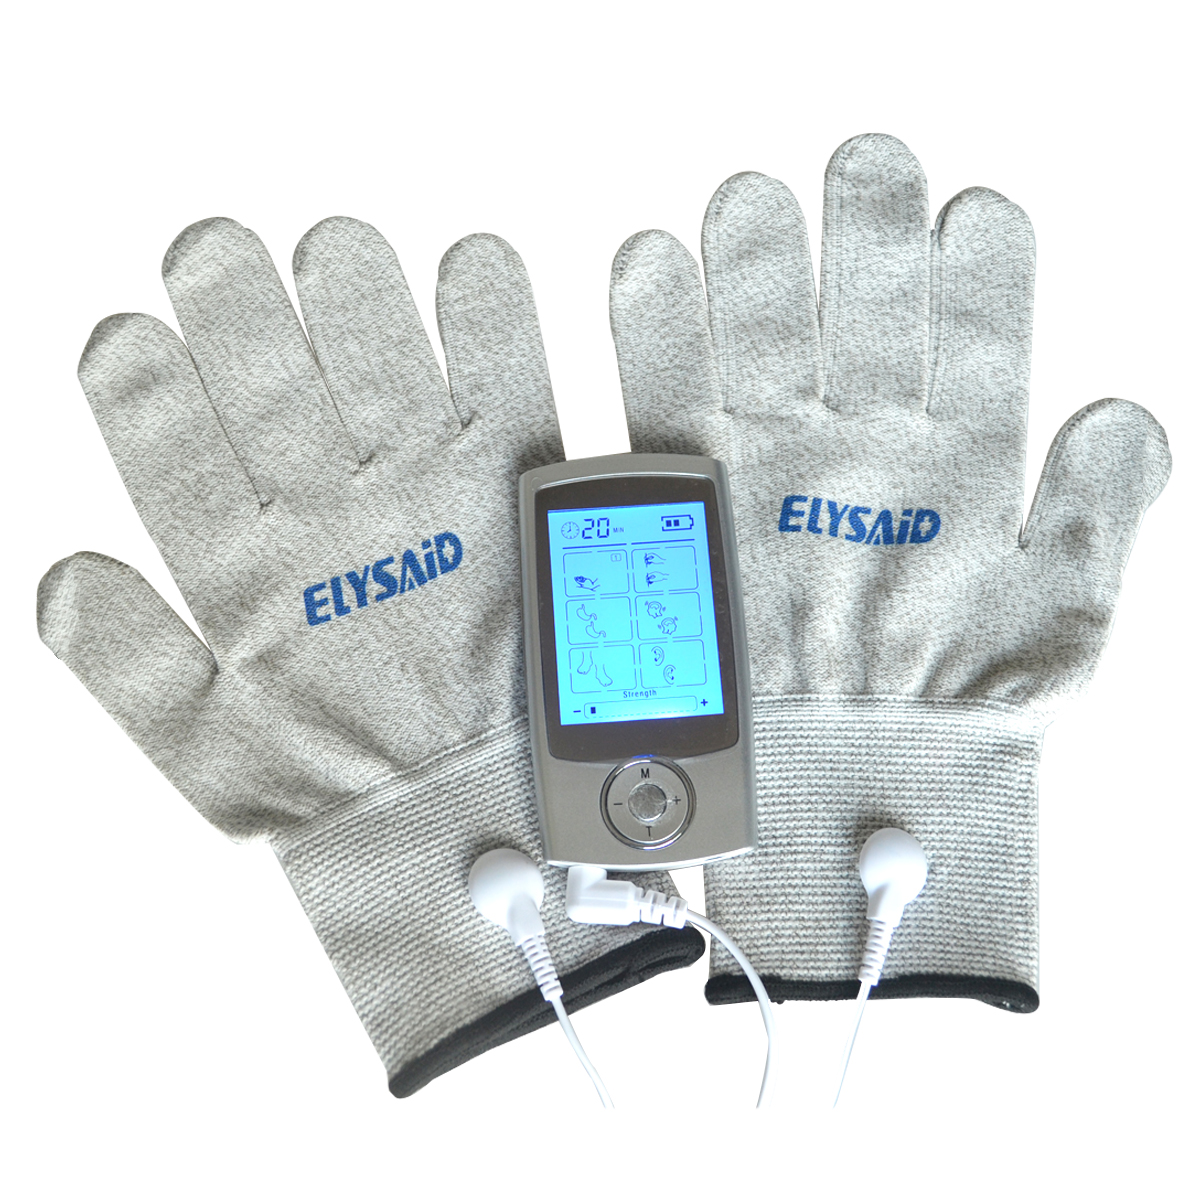 Health Care TENs Massager Digital Therapy Machine Muscle Stimulator+1Pair Hands Care Conductive Electrode Fiber Silve Gloves health care tens acupuncture electric therapy massageador electric digital massager with fiber electrode massage gloves